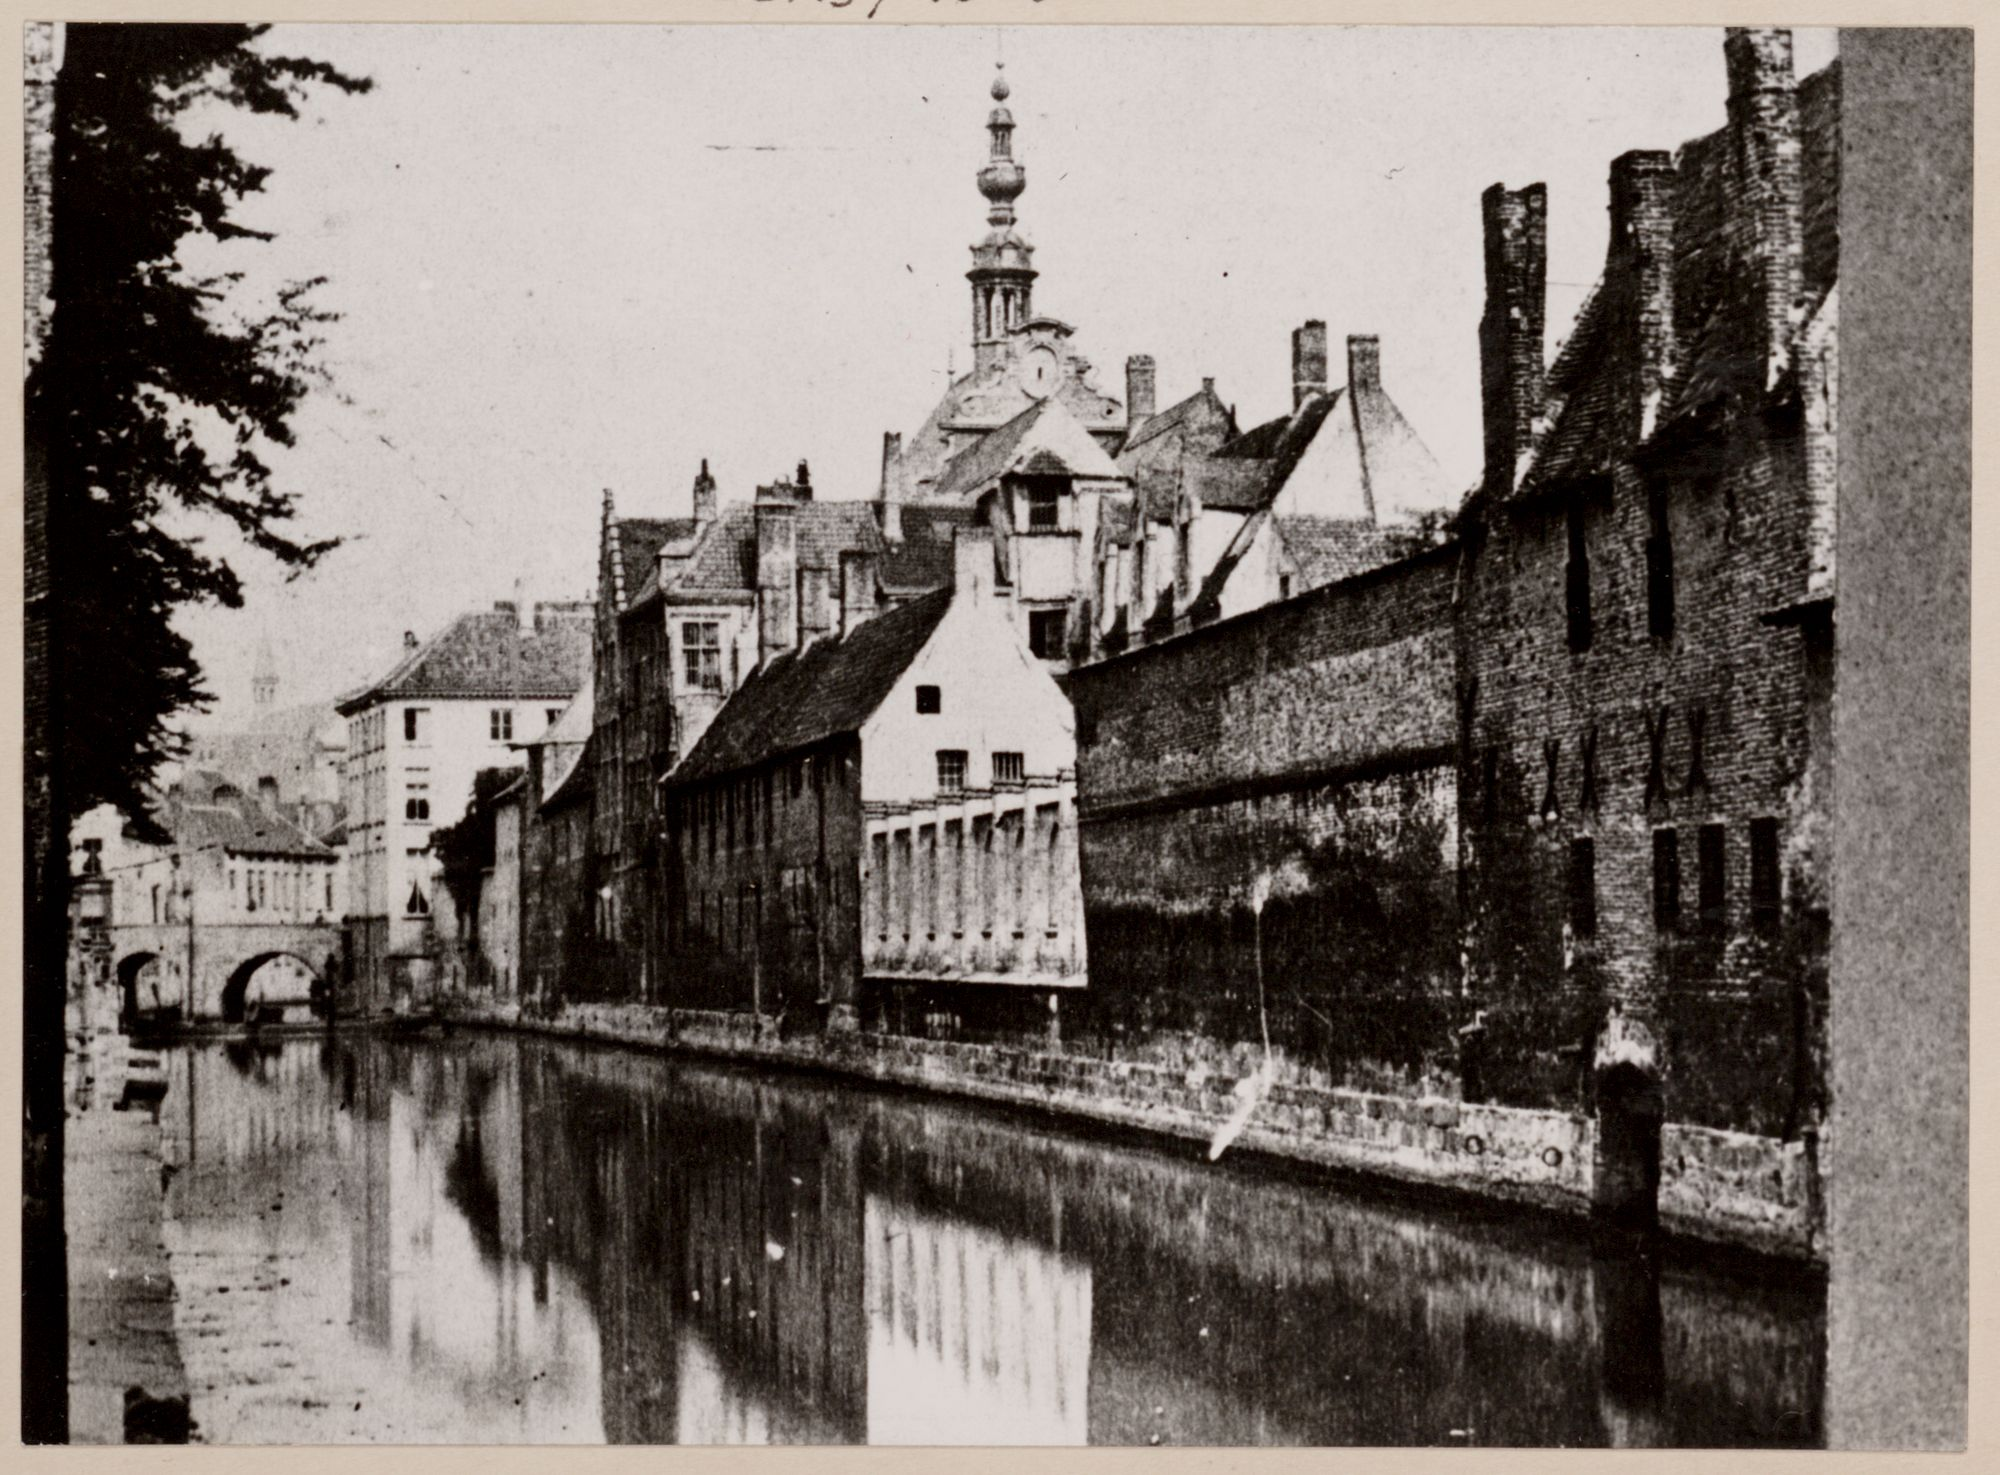 Gent: Oude Houtlei